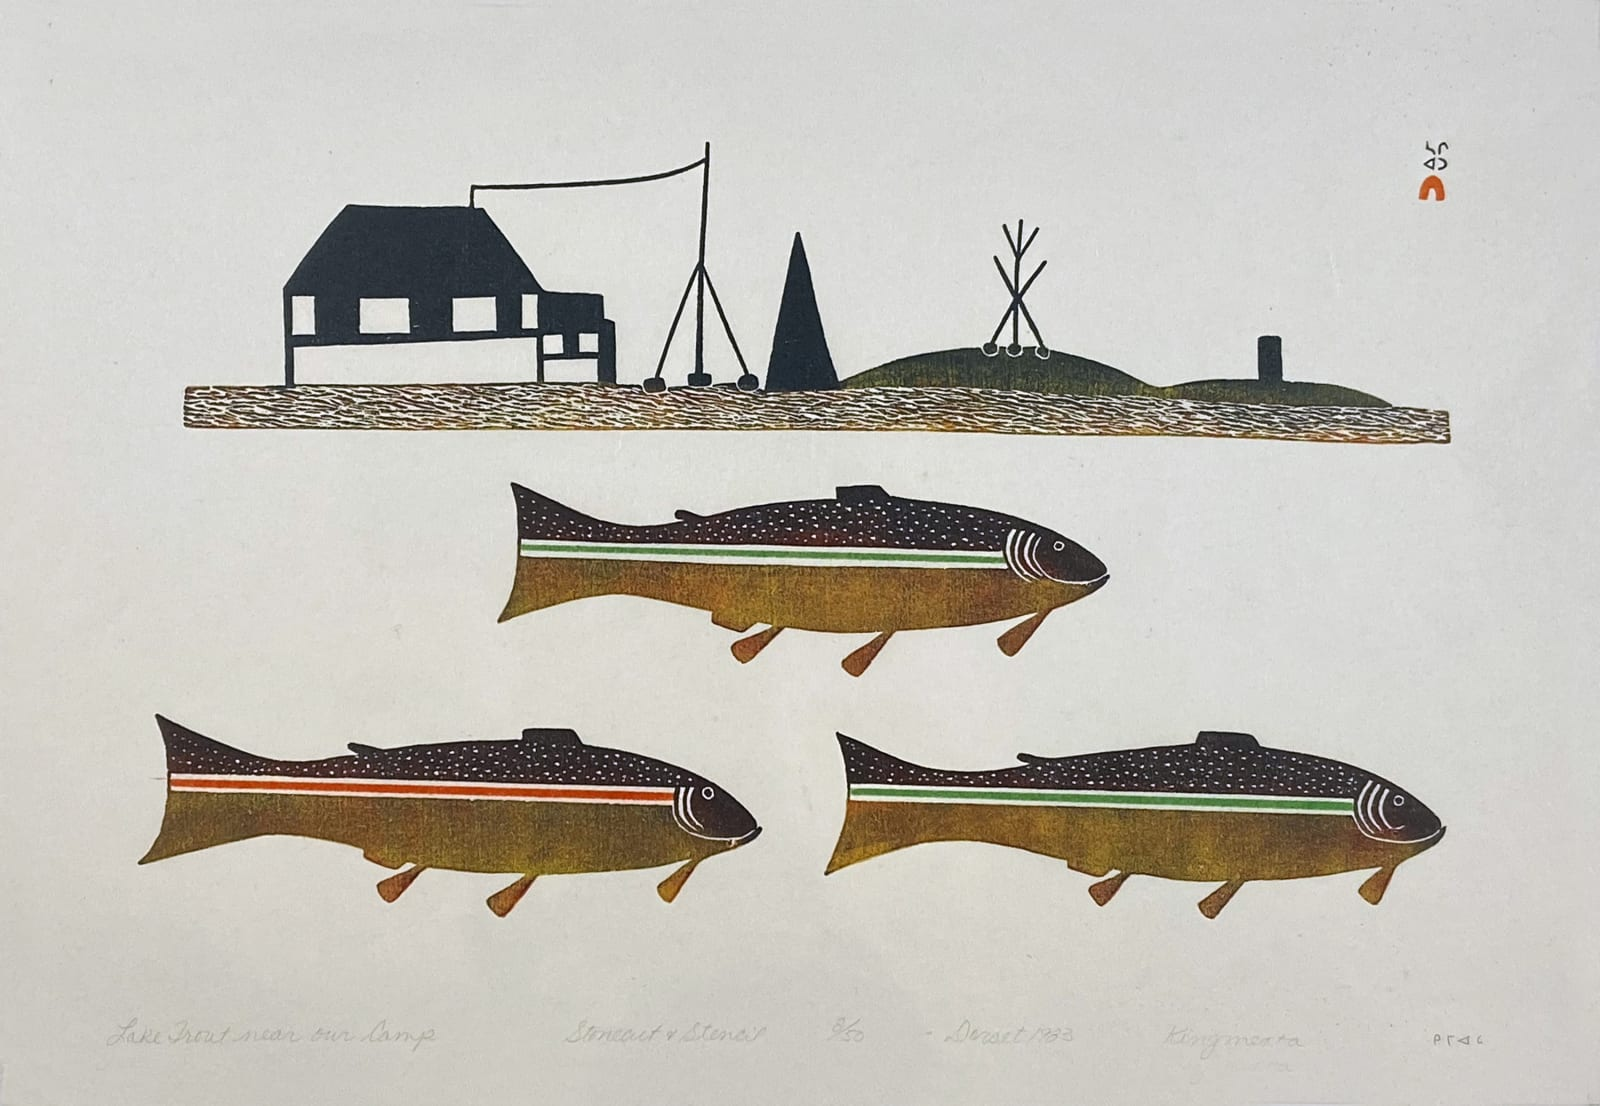 LOT 72 KINGMEATA ETIDLOOIE (1915-1989) KINNGAIT (CAPE DORSET) Lake Trout Near Our Camp, 1983 (2005) stonecut and stencil, 18 x 36 in (45.7 x 91.4 cm) ESTIMATE: $400 — $600 price realized: $360